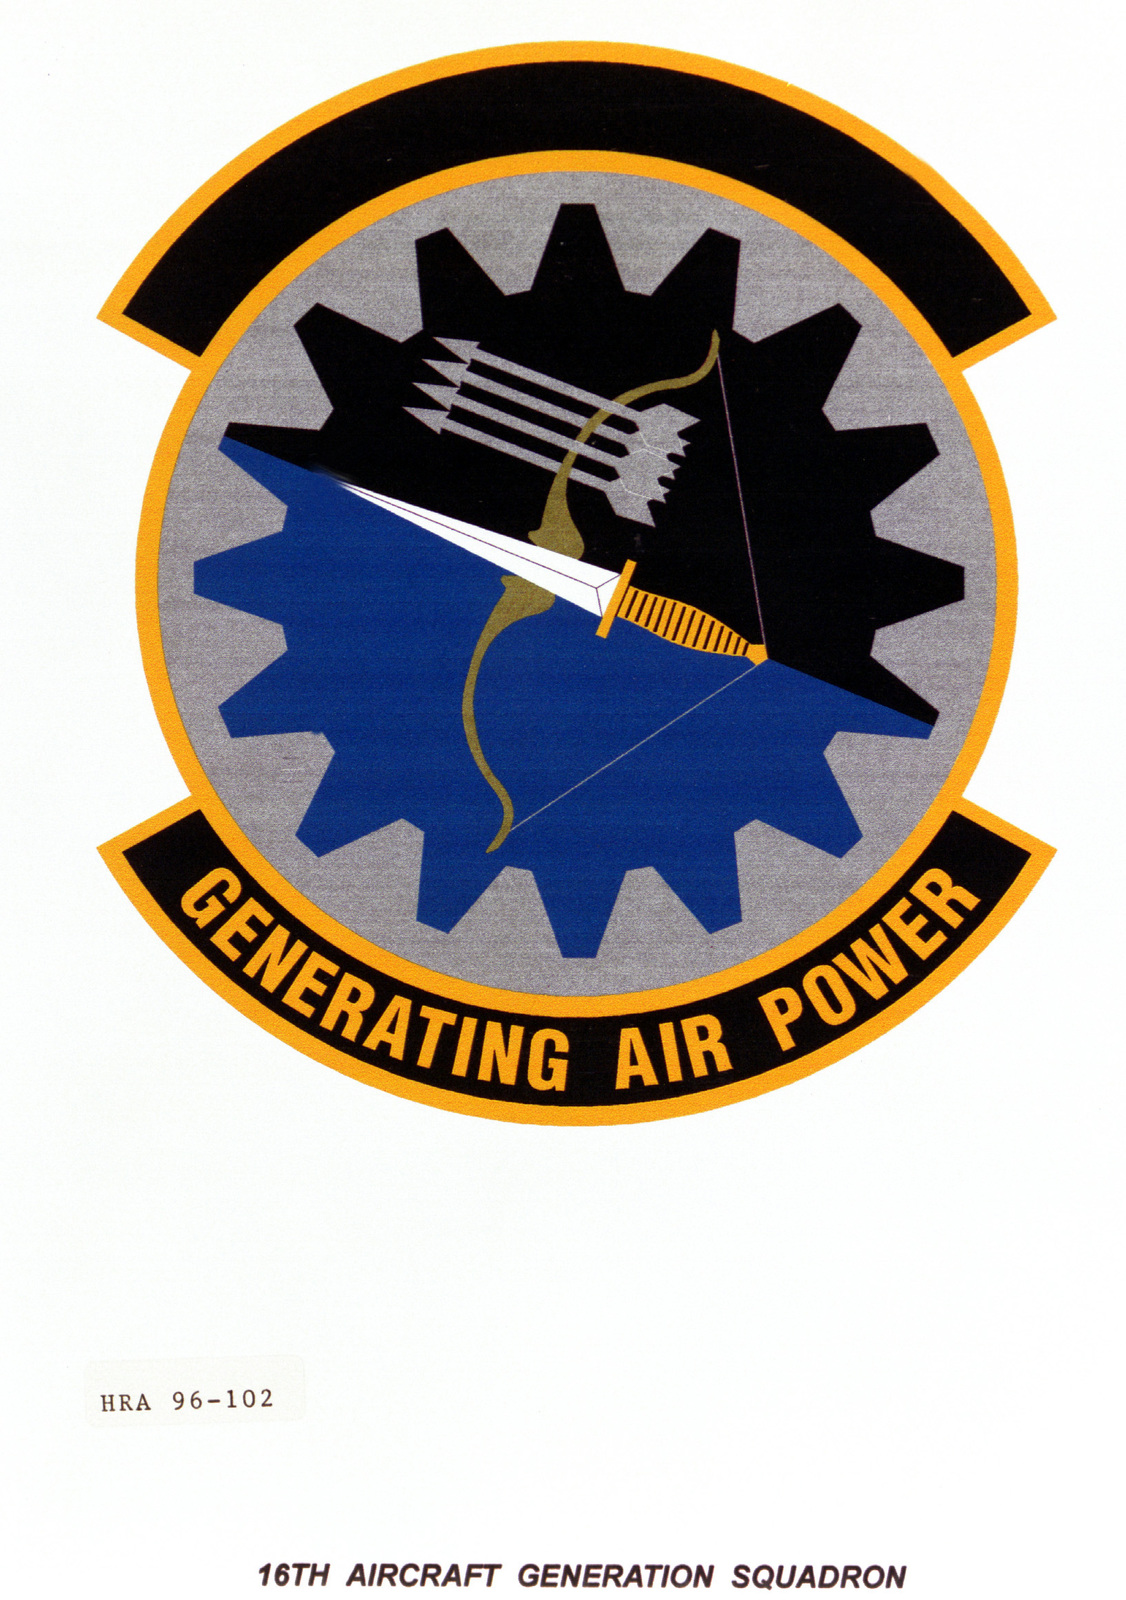 Air Force Organizational Emblem. 16th Aircraft Generation Squadron Exact Date Shot Unknown